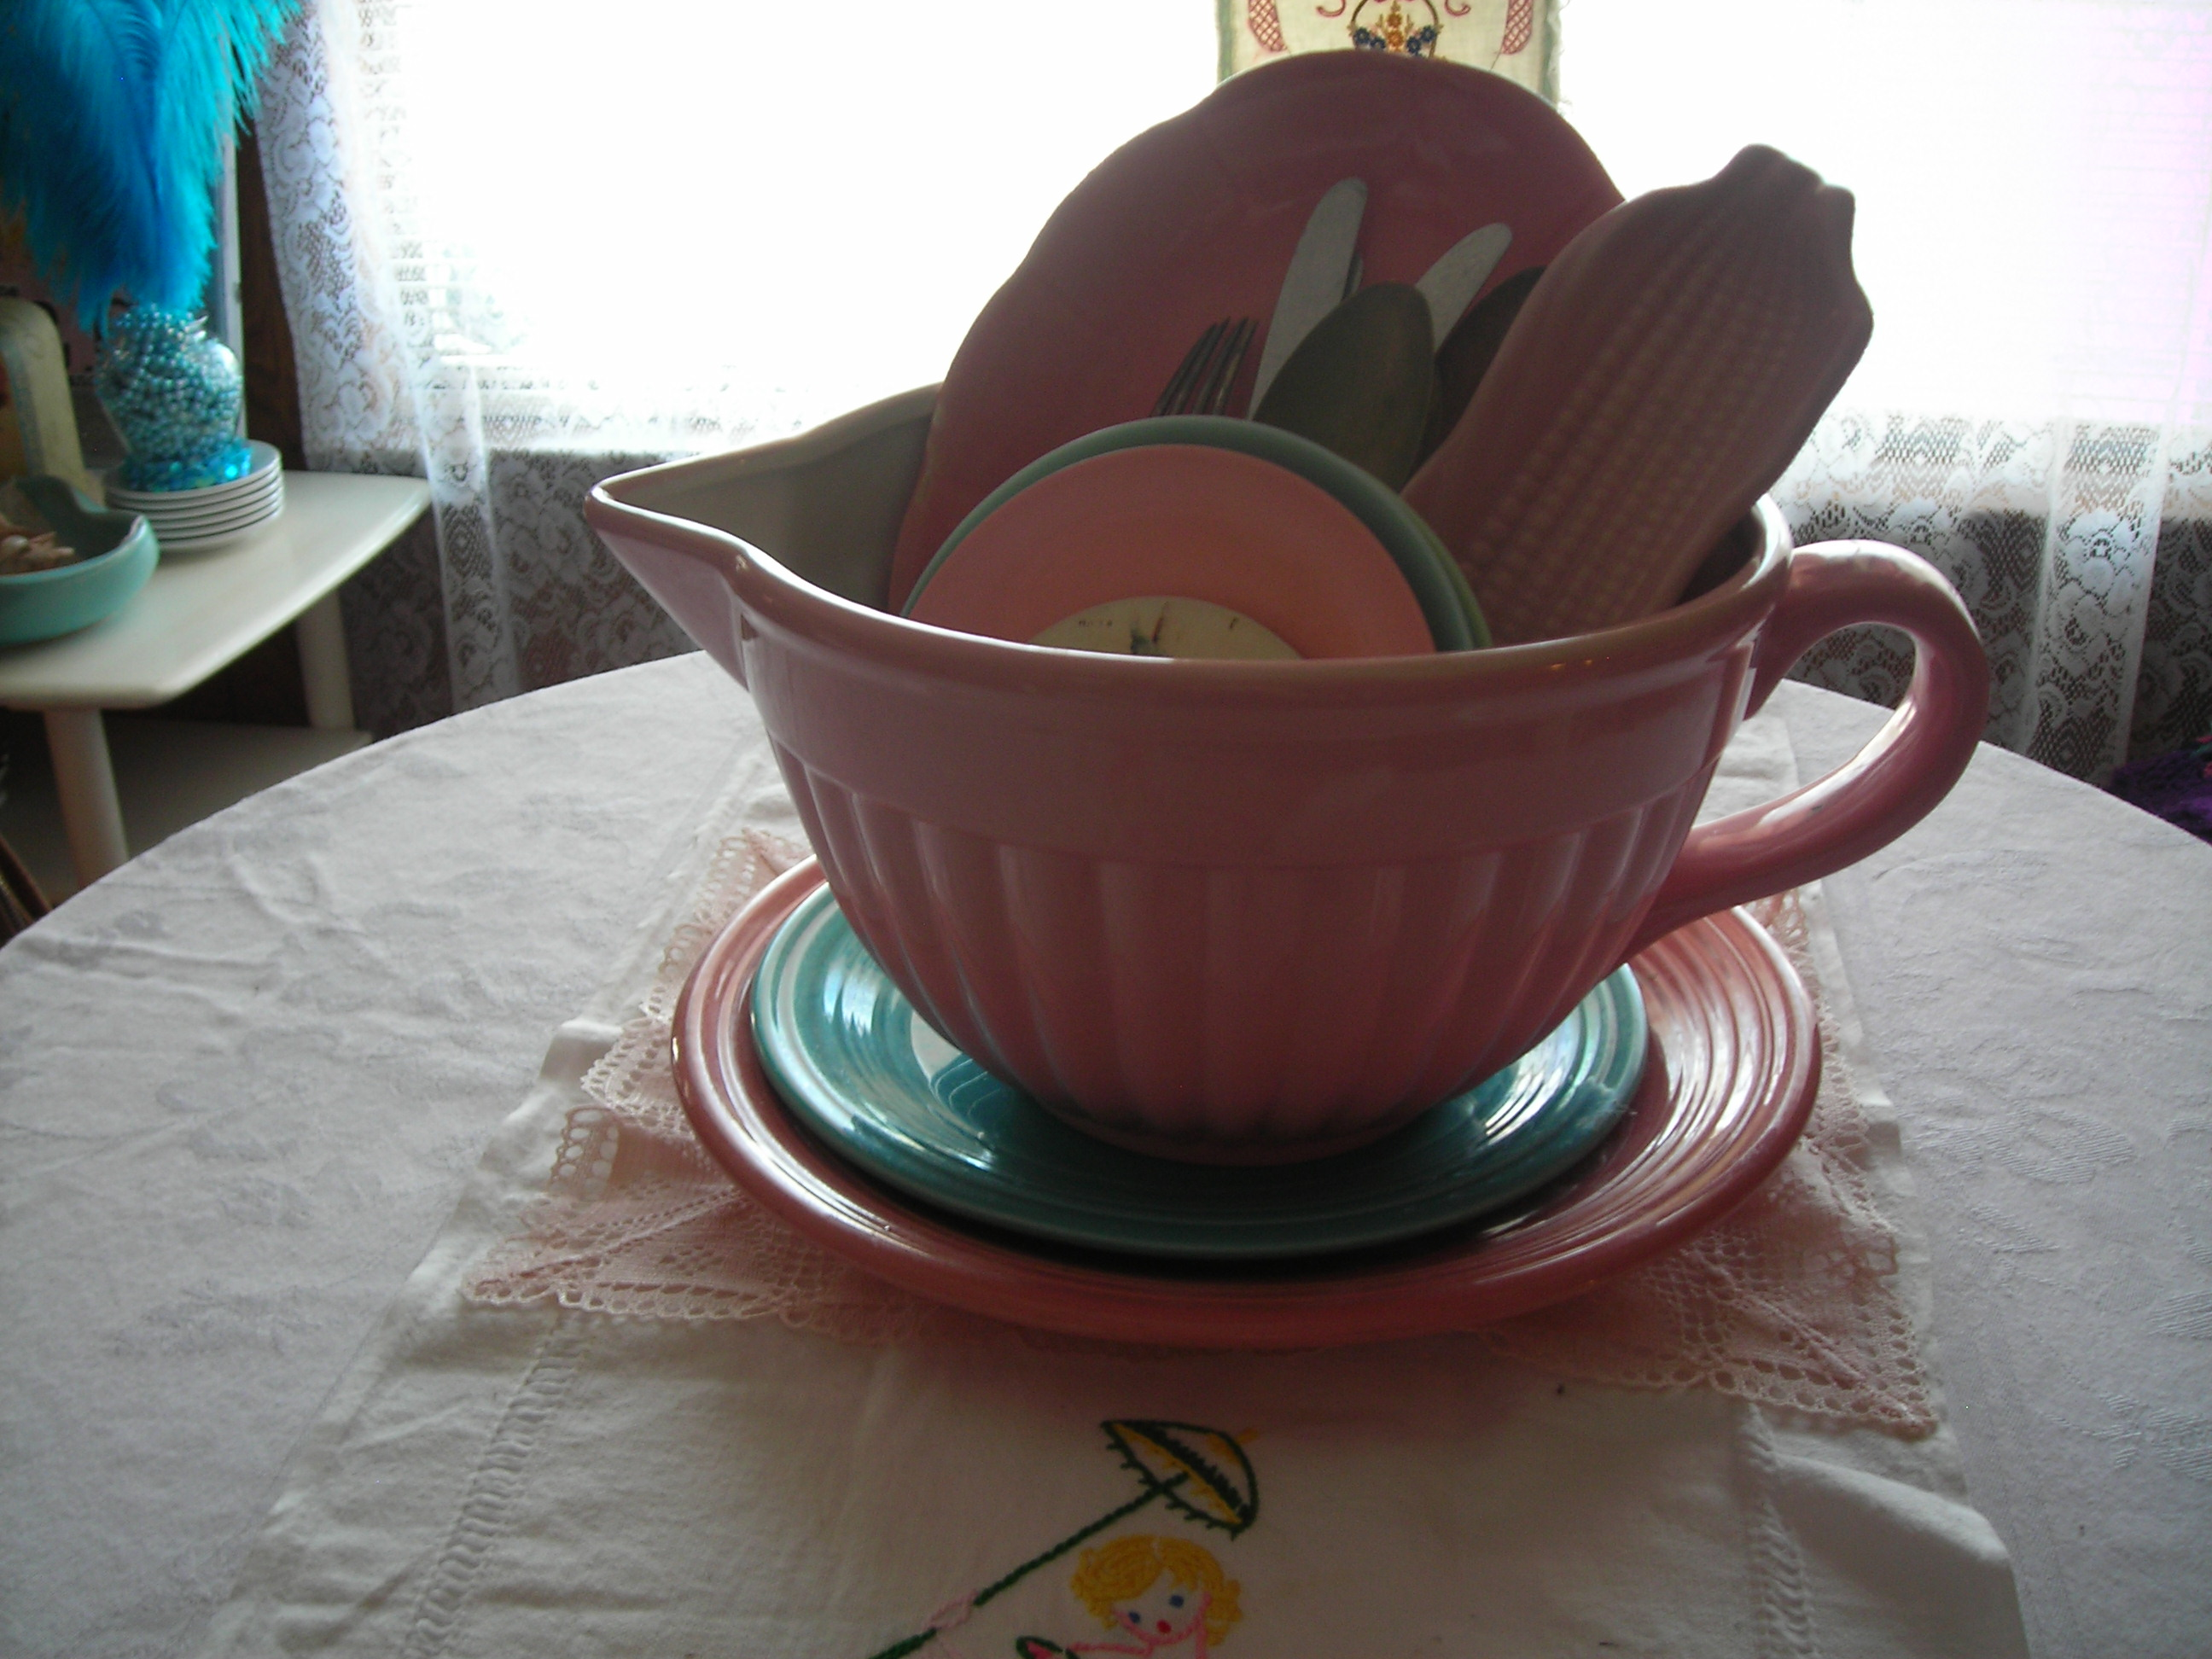 here's my pride and joy from the MoMA gift shop ... sweet pink batter bowl. i filled it with old stuff and am using it as a centerpiece for my b'fast table